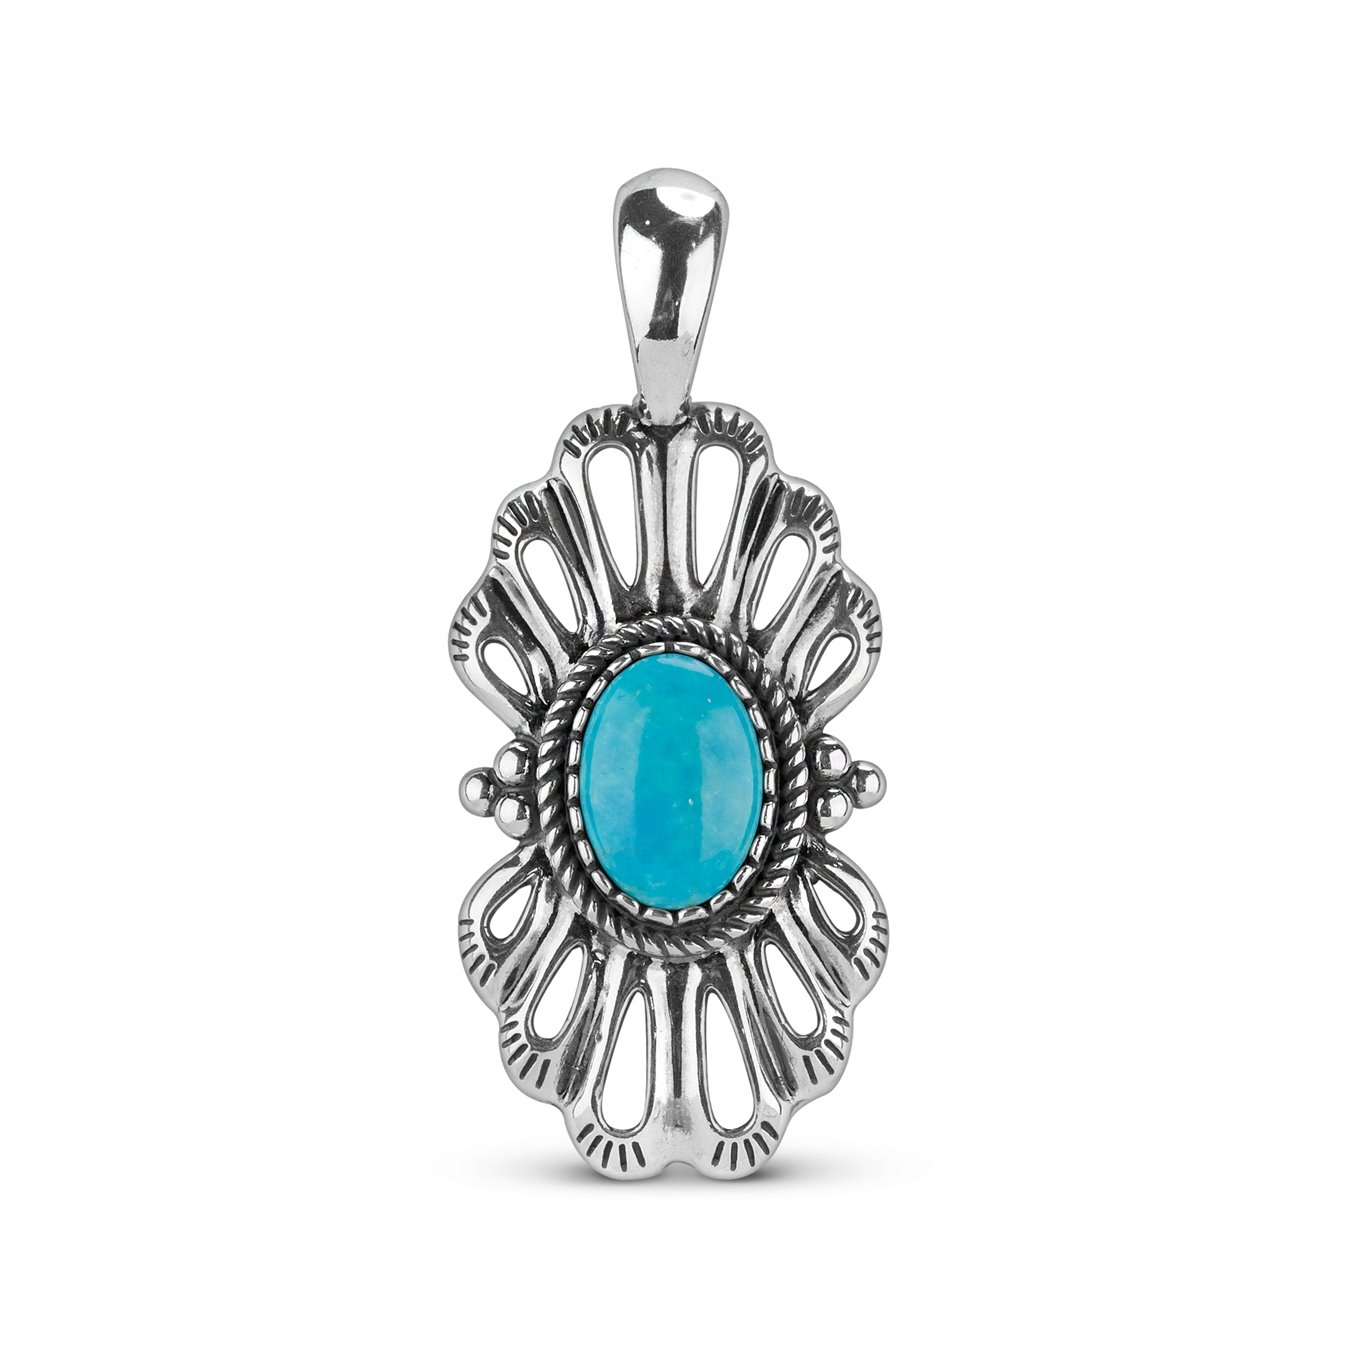 American West Sterling Silver Turquoise Pendant Enhancer by American West Jewelry